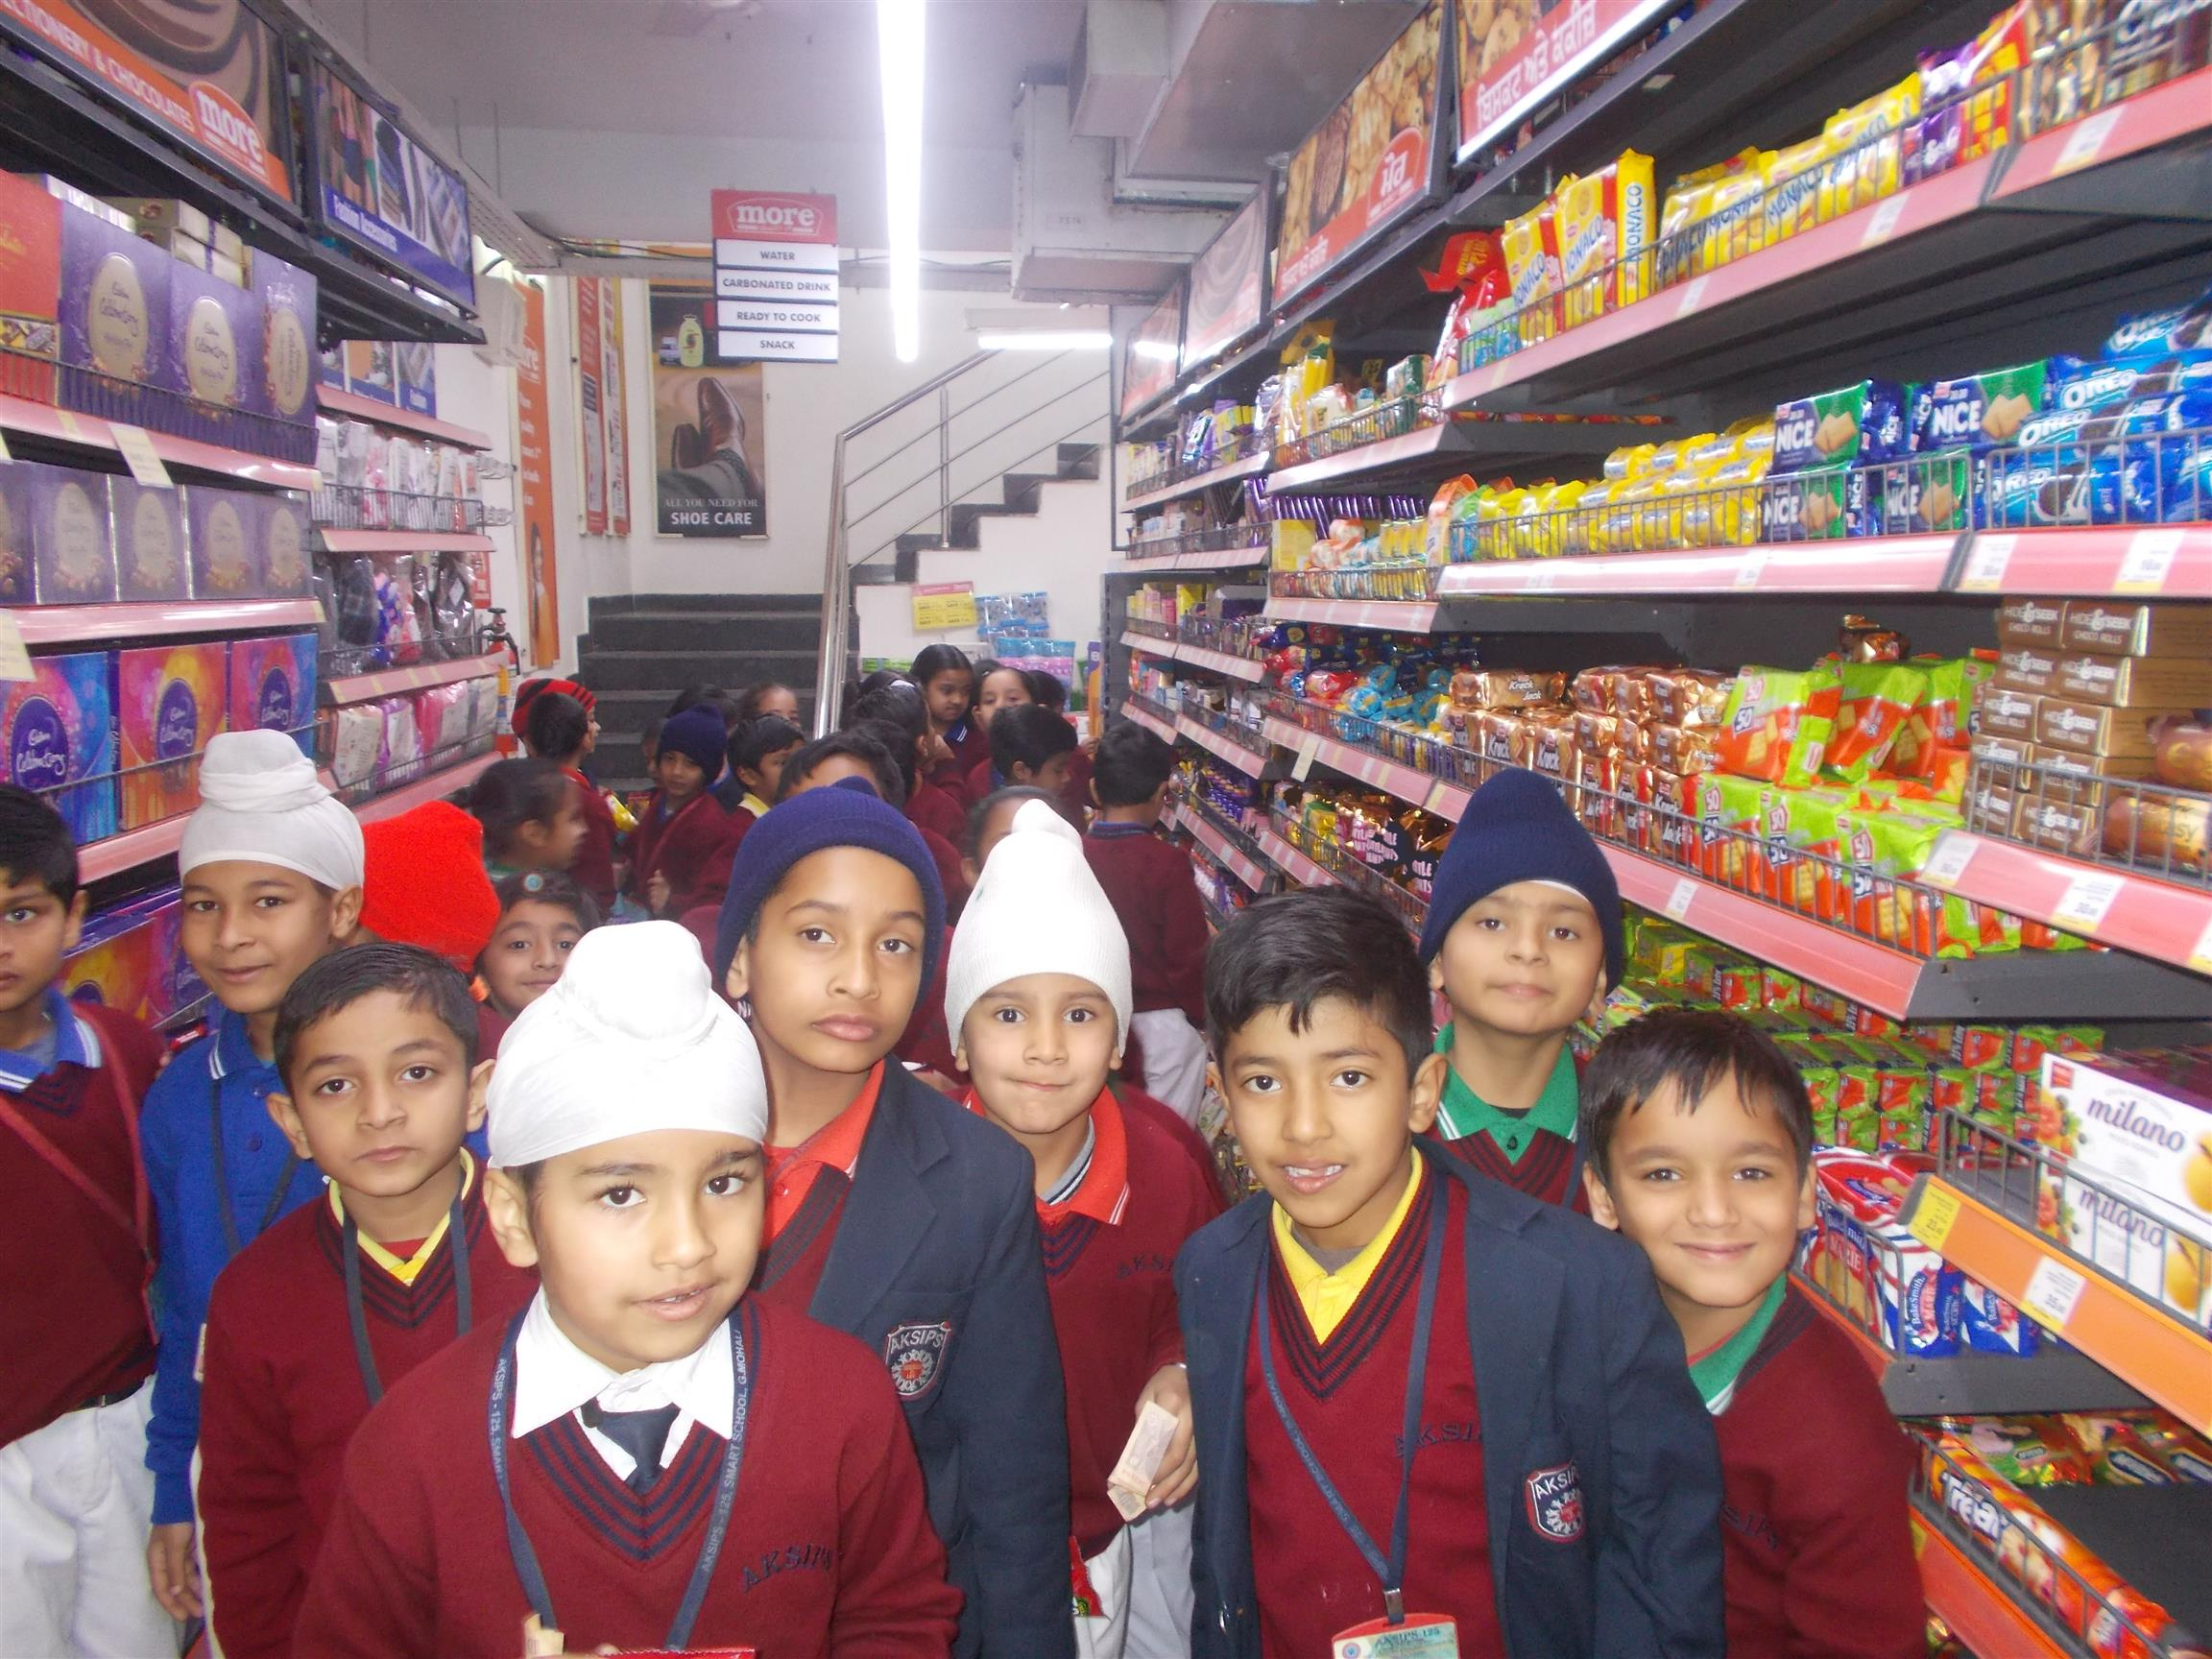 Visit to Departmental Store - MORE| AKSIPS 125 Chandigarh